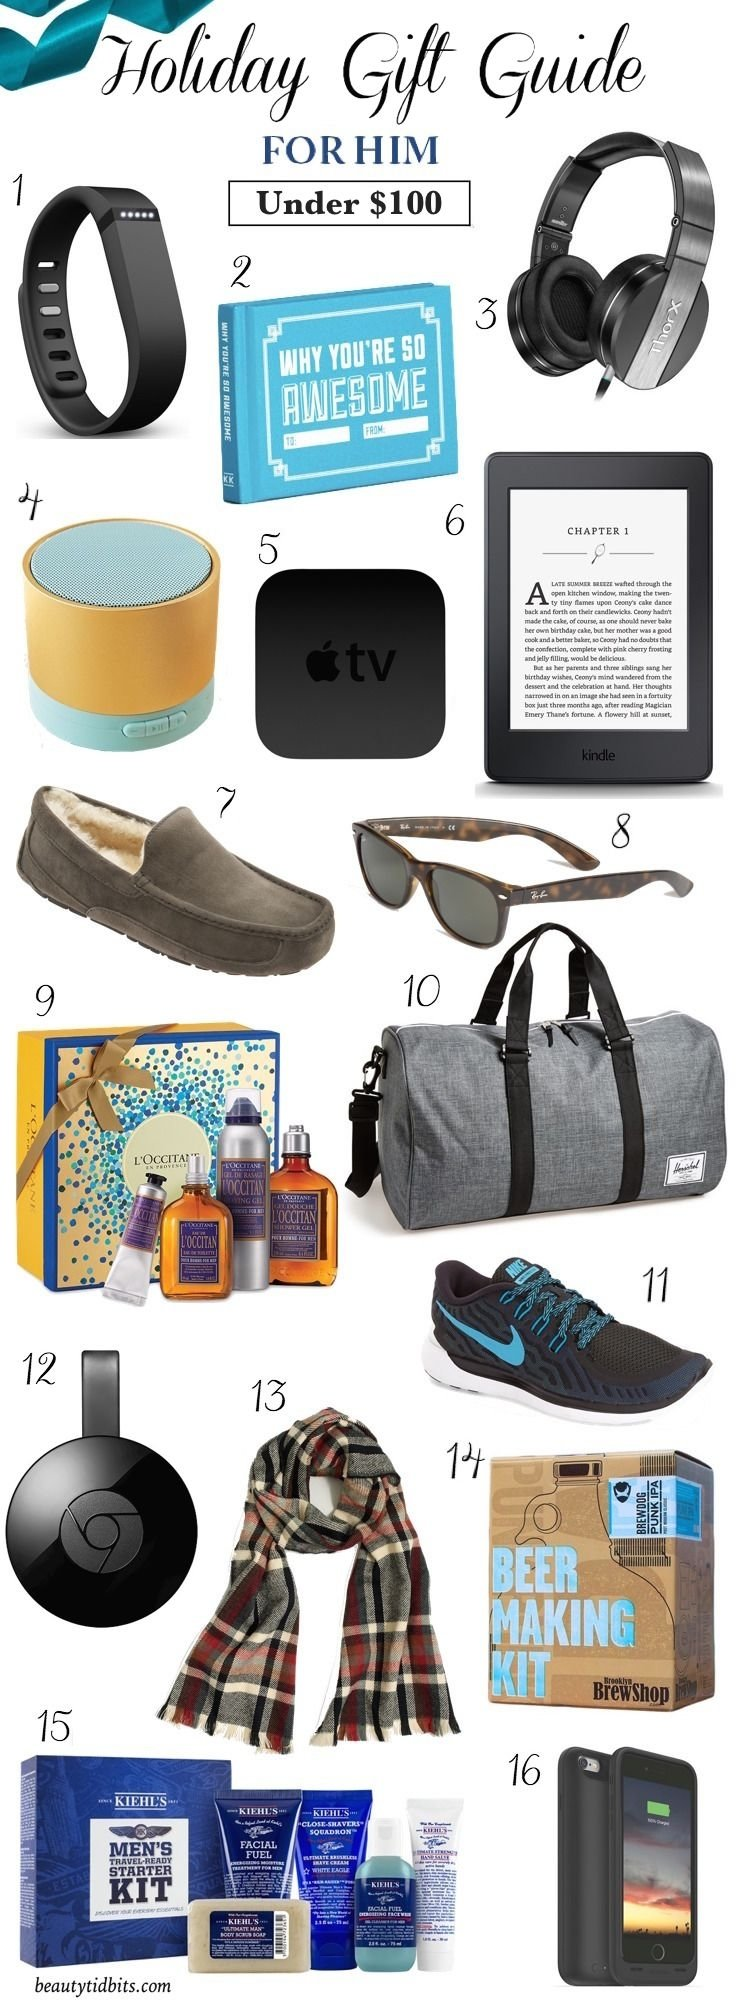 10 Amazing Great Gift Ideas For Guys 126 best holiday gift giving images on pinterest christmas 7 2020